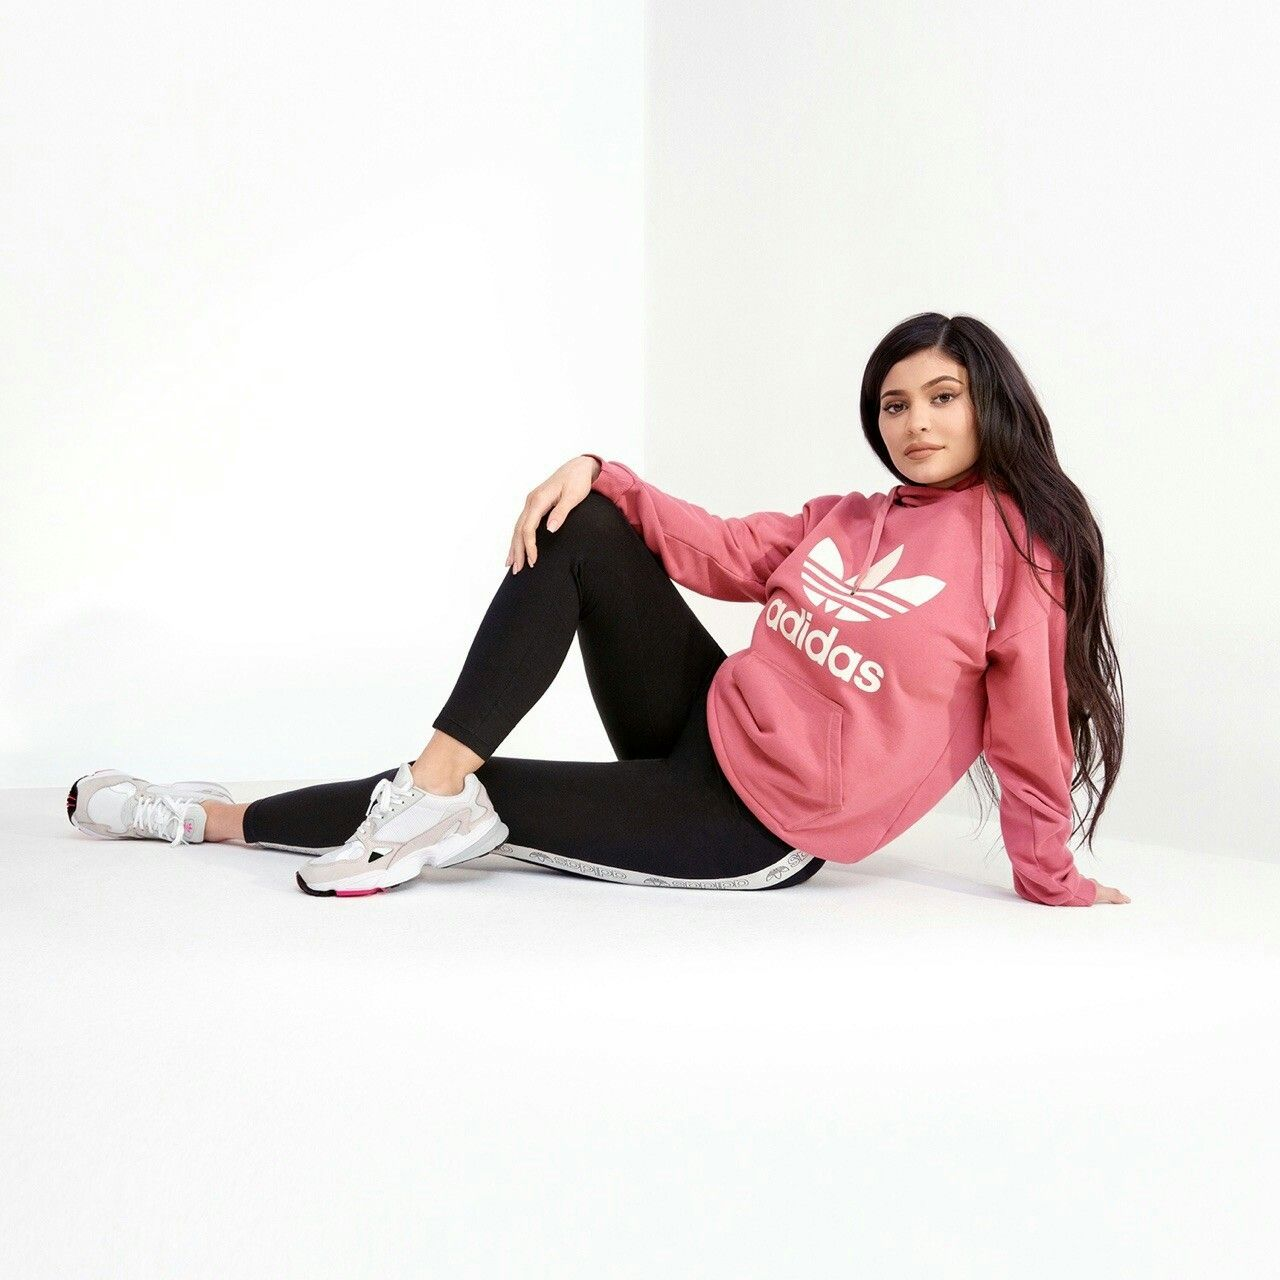 Pin by nathalie on Kylie Jenner | Kylie jenner adidas, Kylie